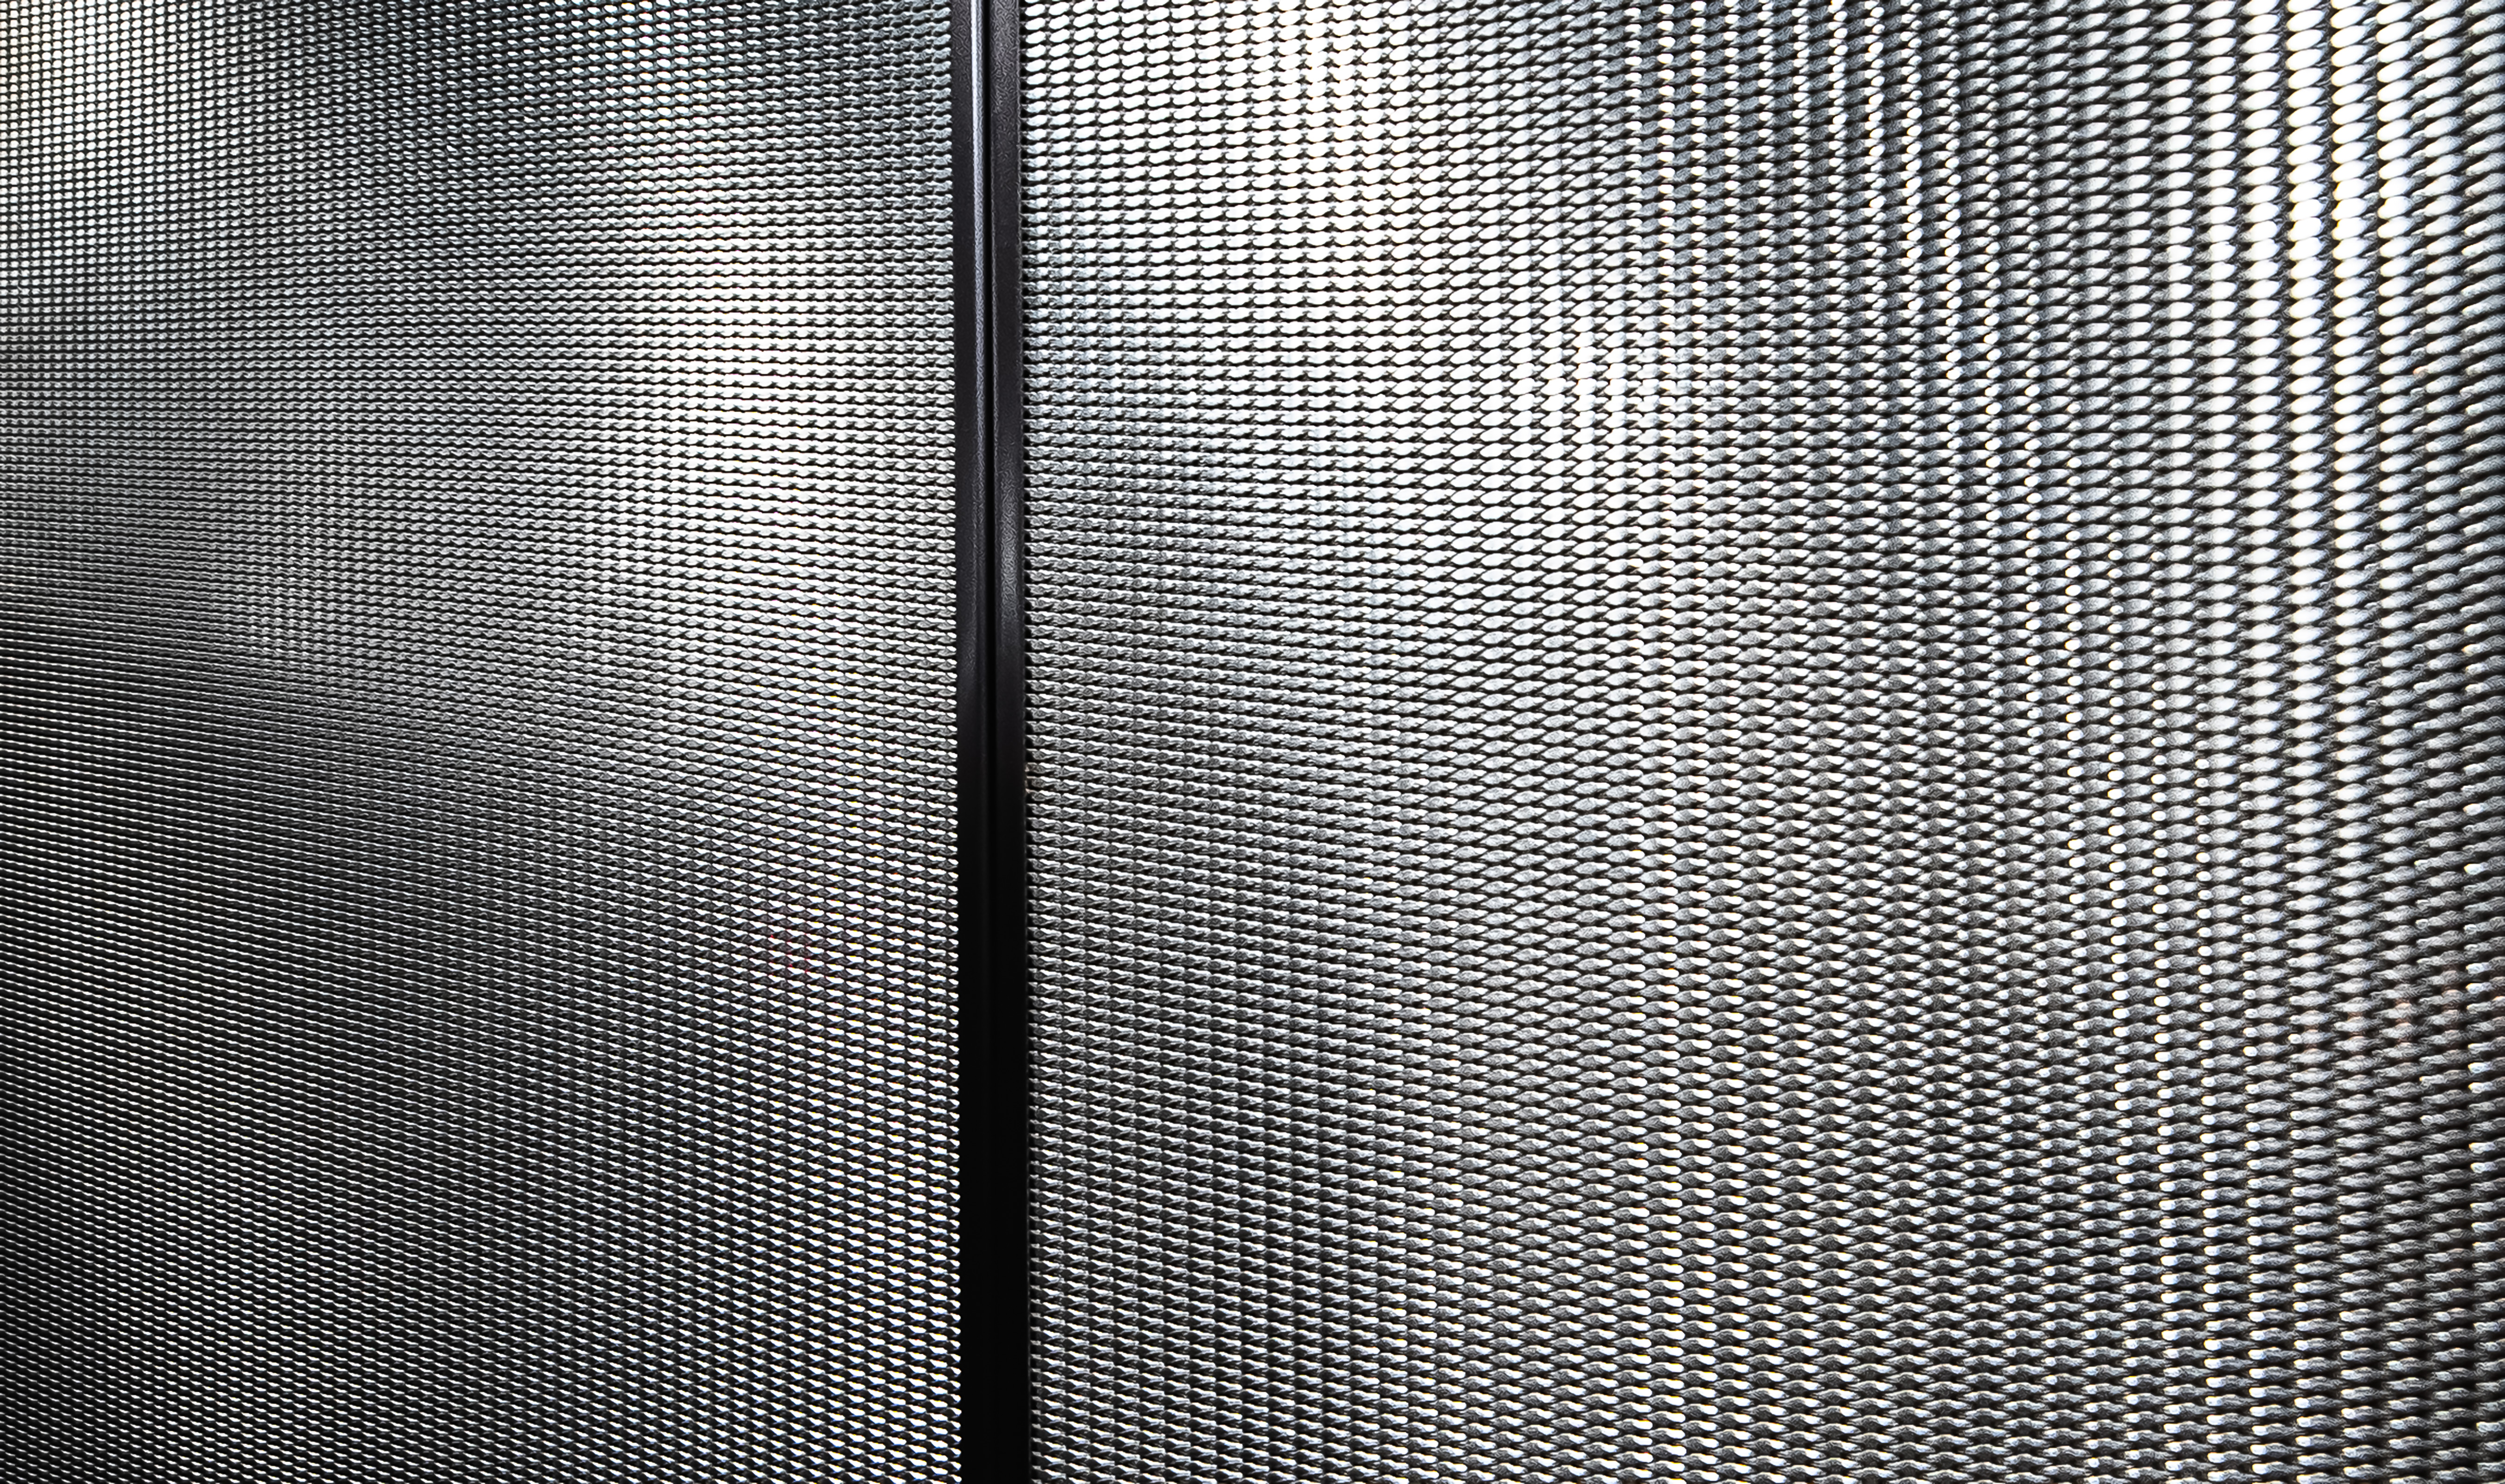 Banker Wire's woven wire mesh pattern DS-2 adds a unique texture to the elevator interior.